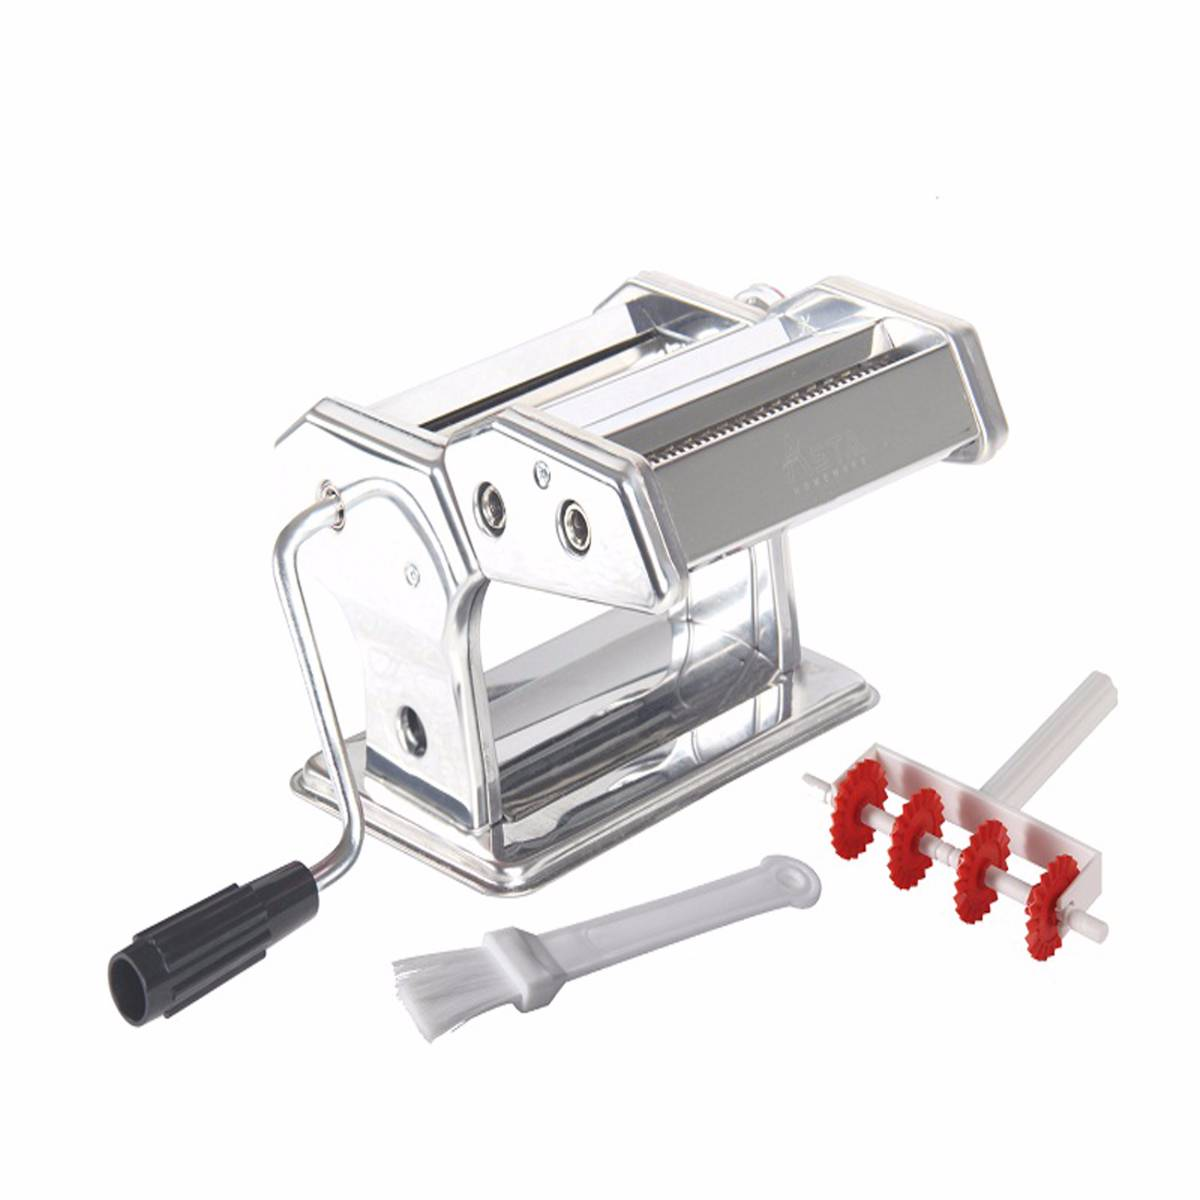 Asta Homeware Gilingan Mie / Pasta Maker ( Red , Orange & Silver/stainless Steel )1